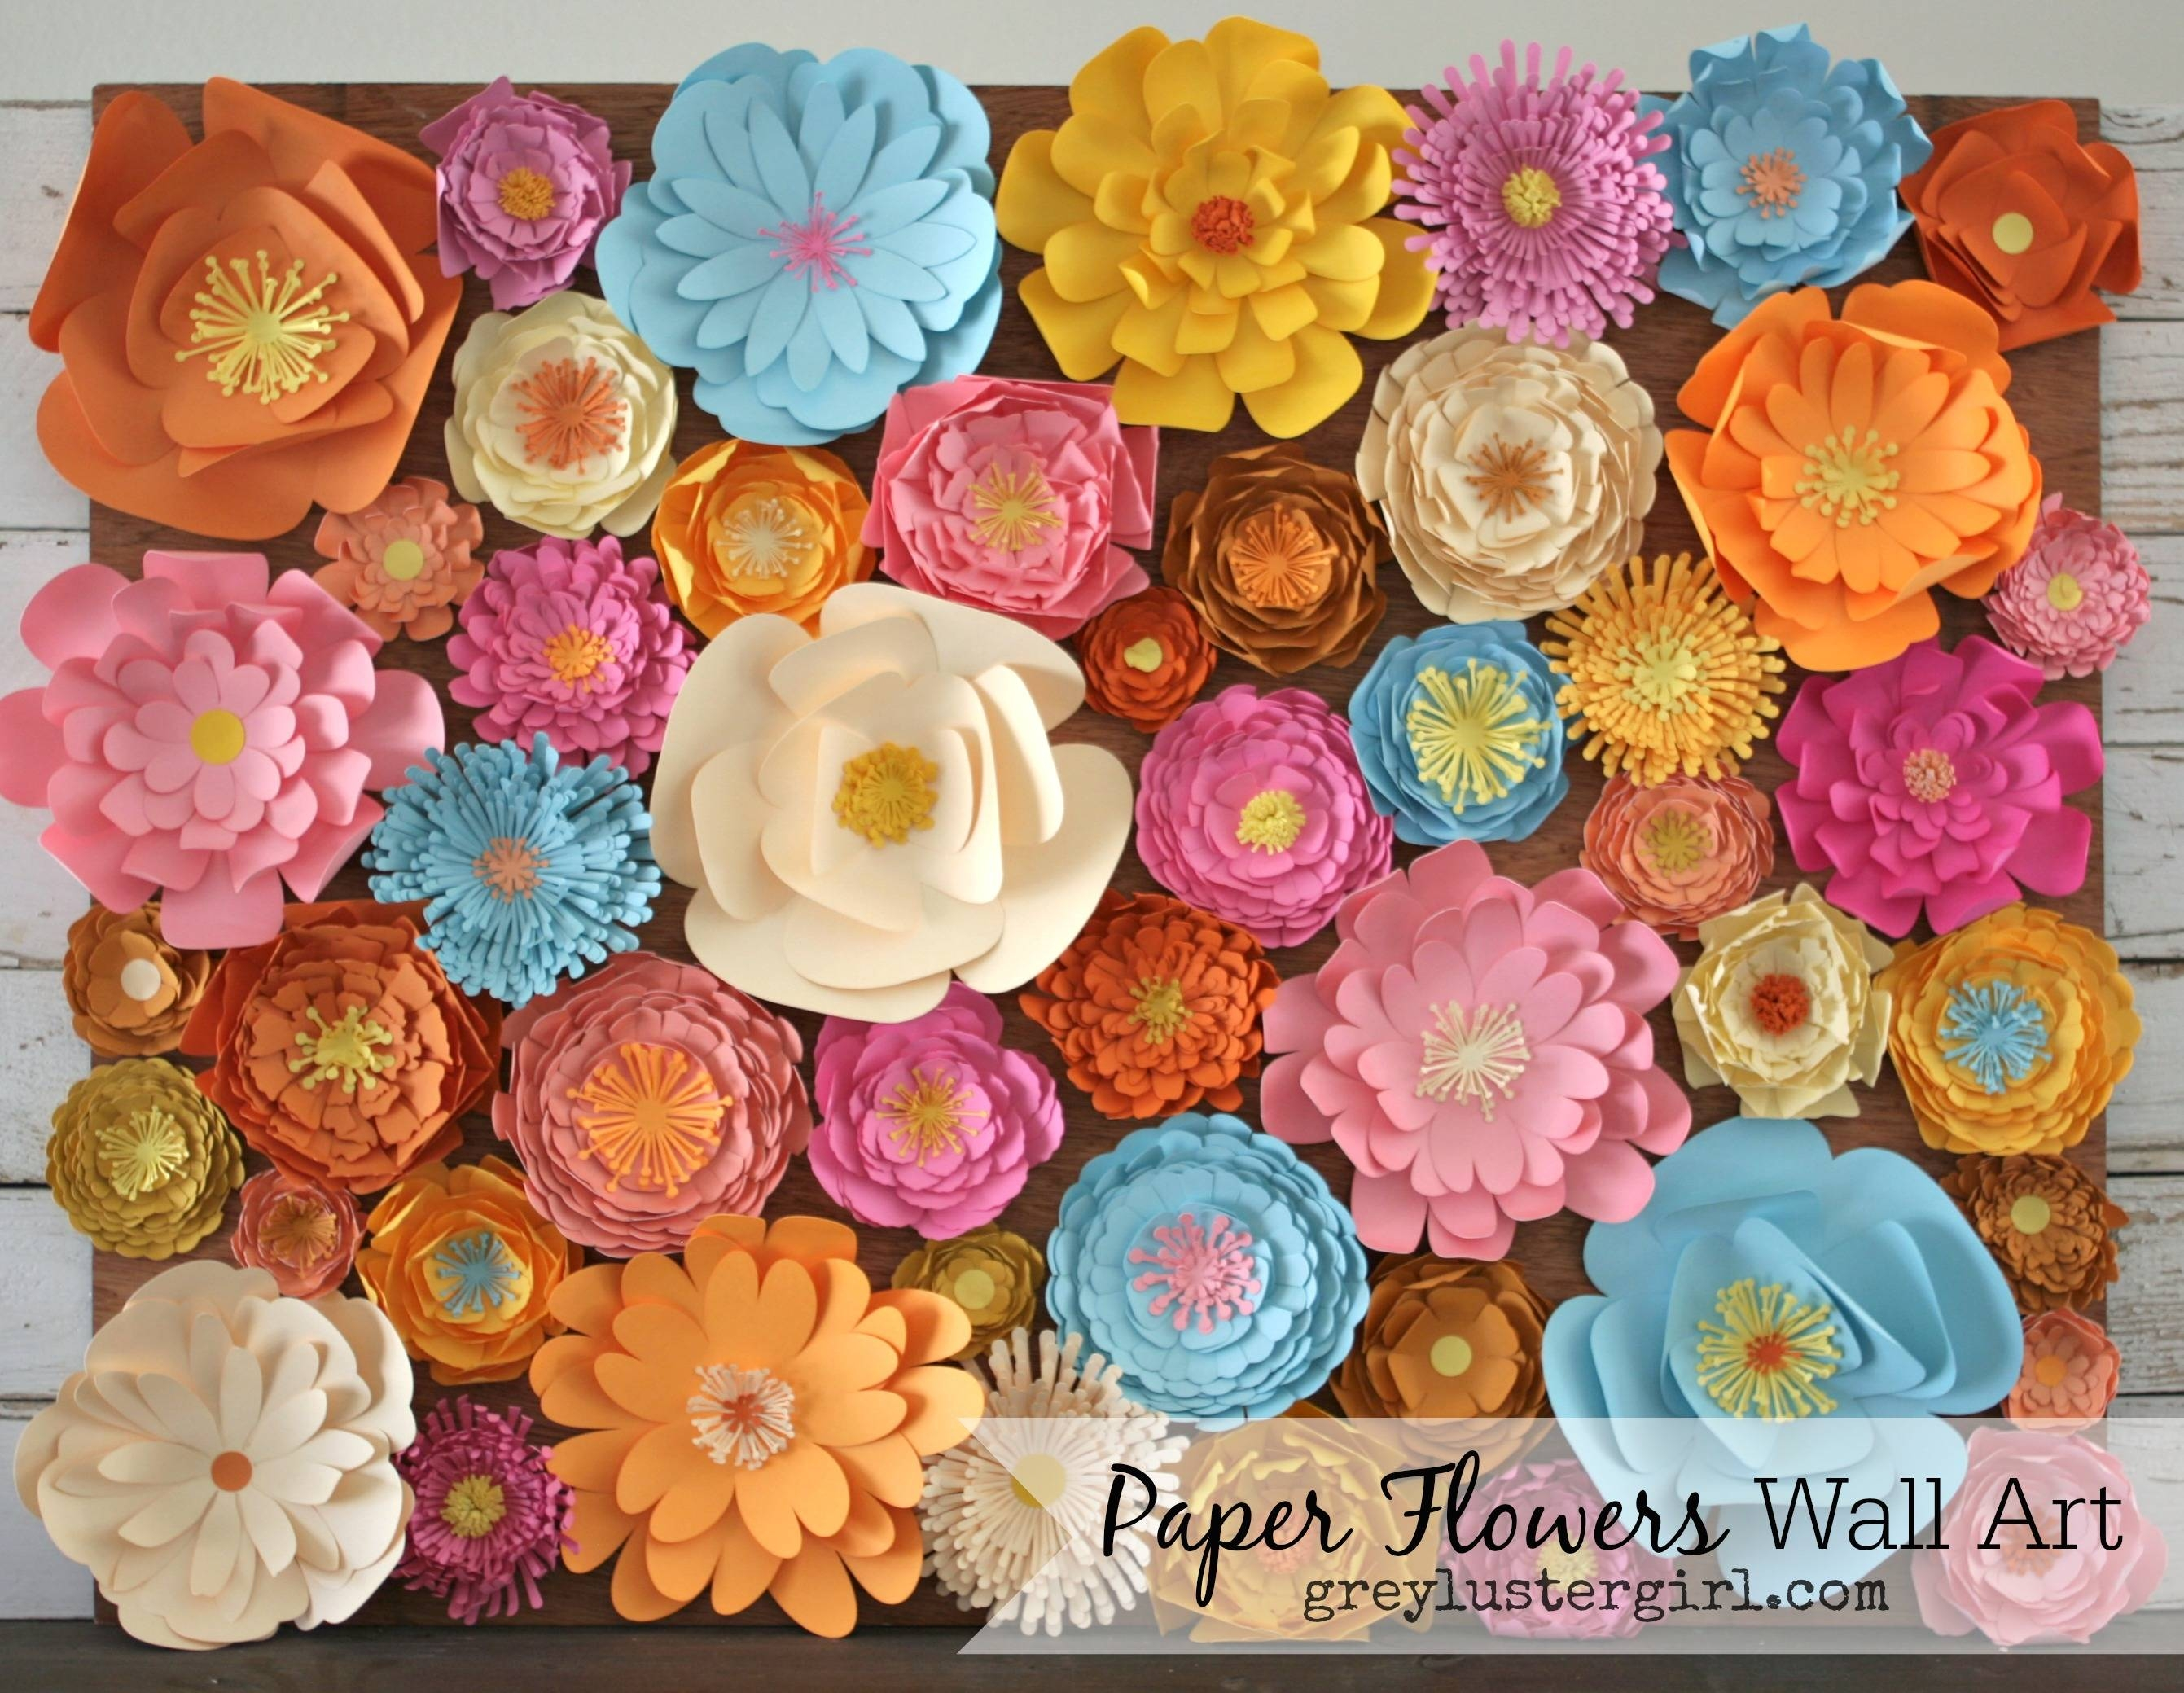 Paper Flowers Wall Art – For Most Current Flowers 3d Wall Art (View 6 of 20)